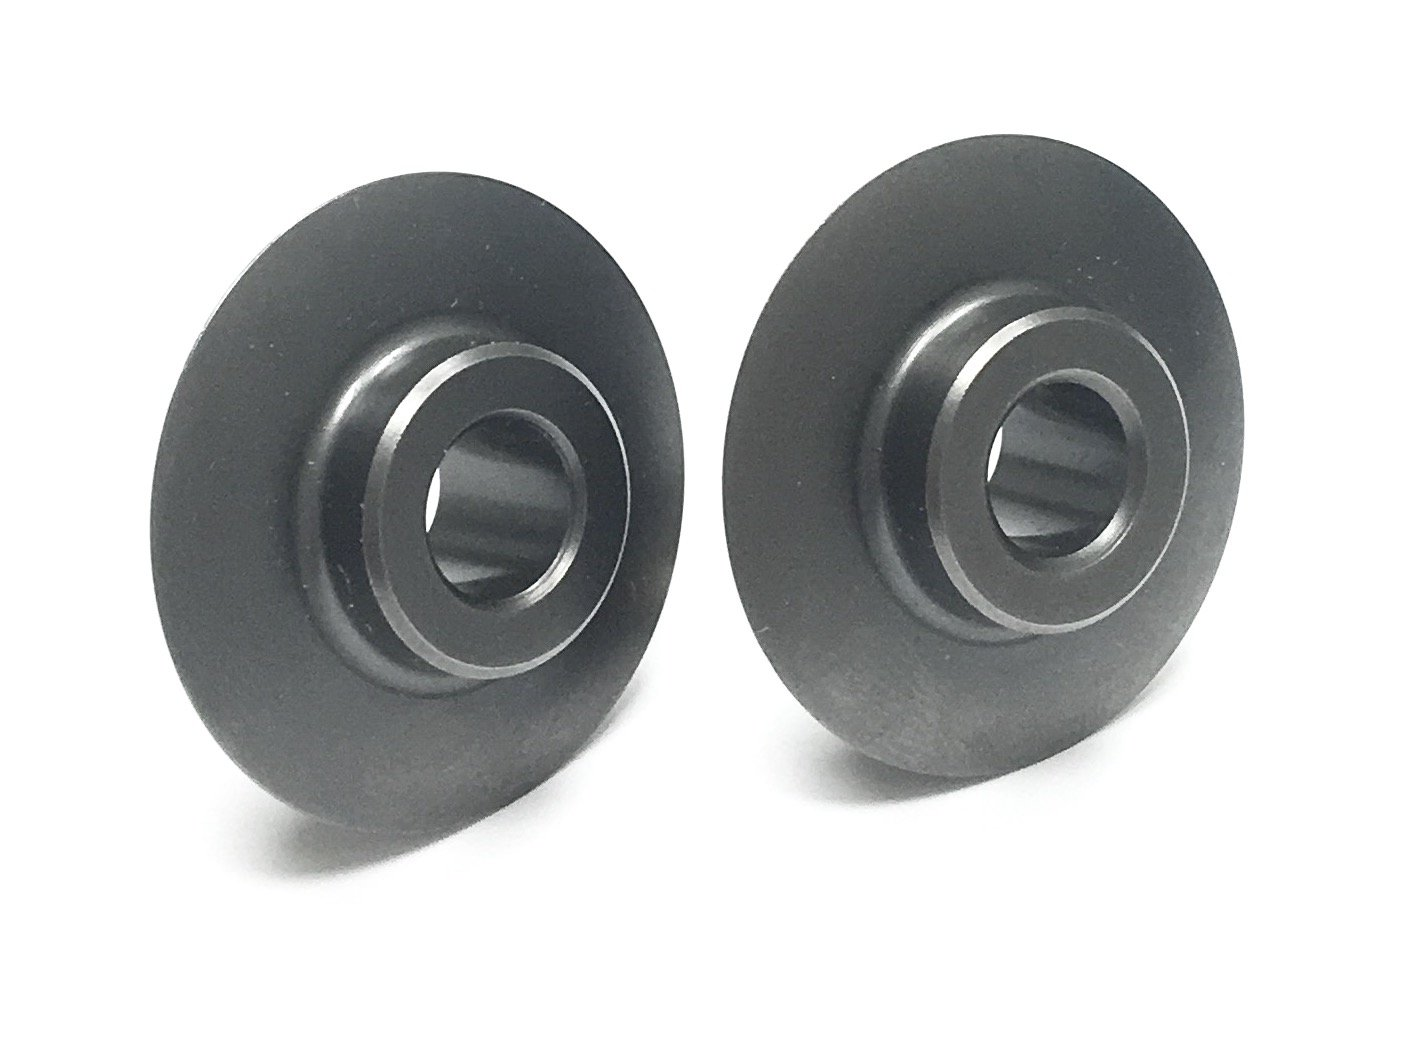 (2 Pack) Replacement Cutting Wheel for Ridgid 30 Pipe Cutter